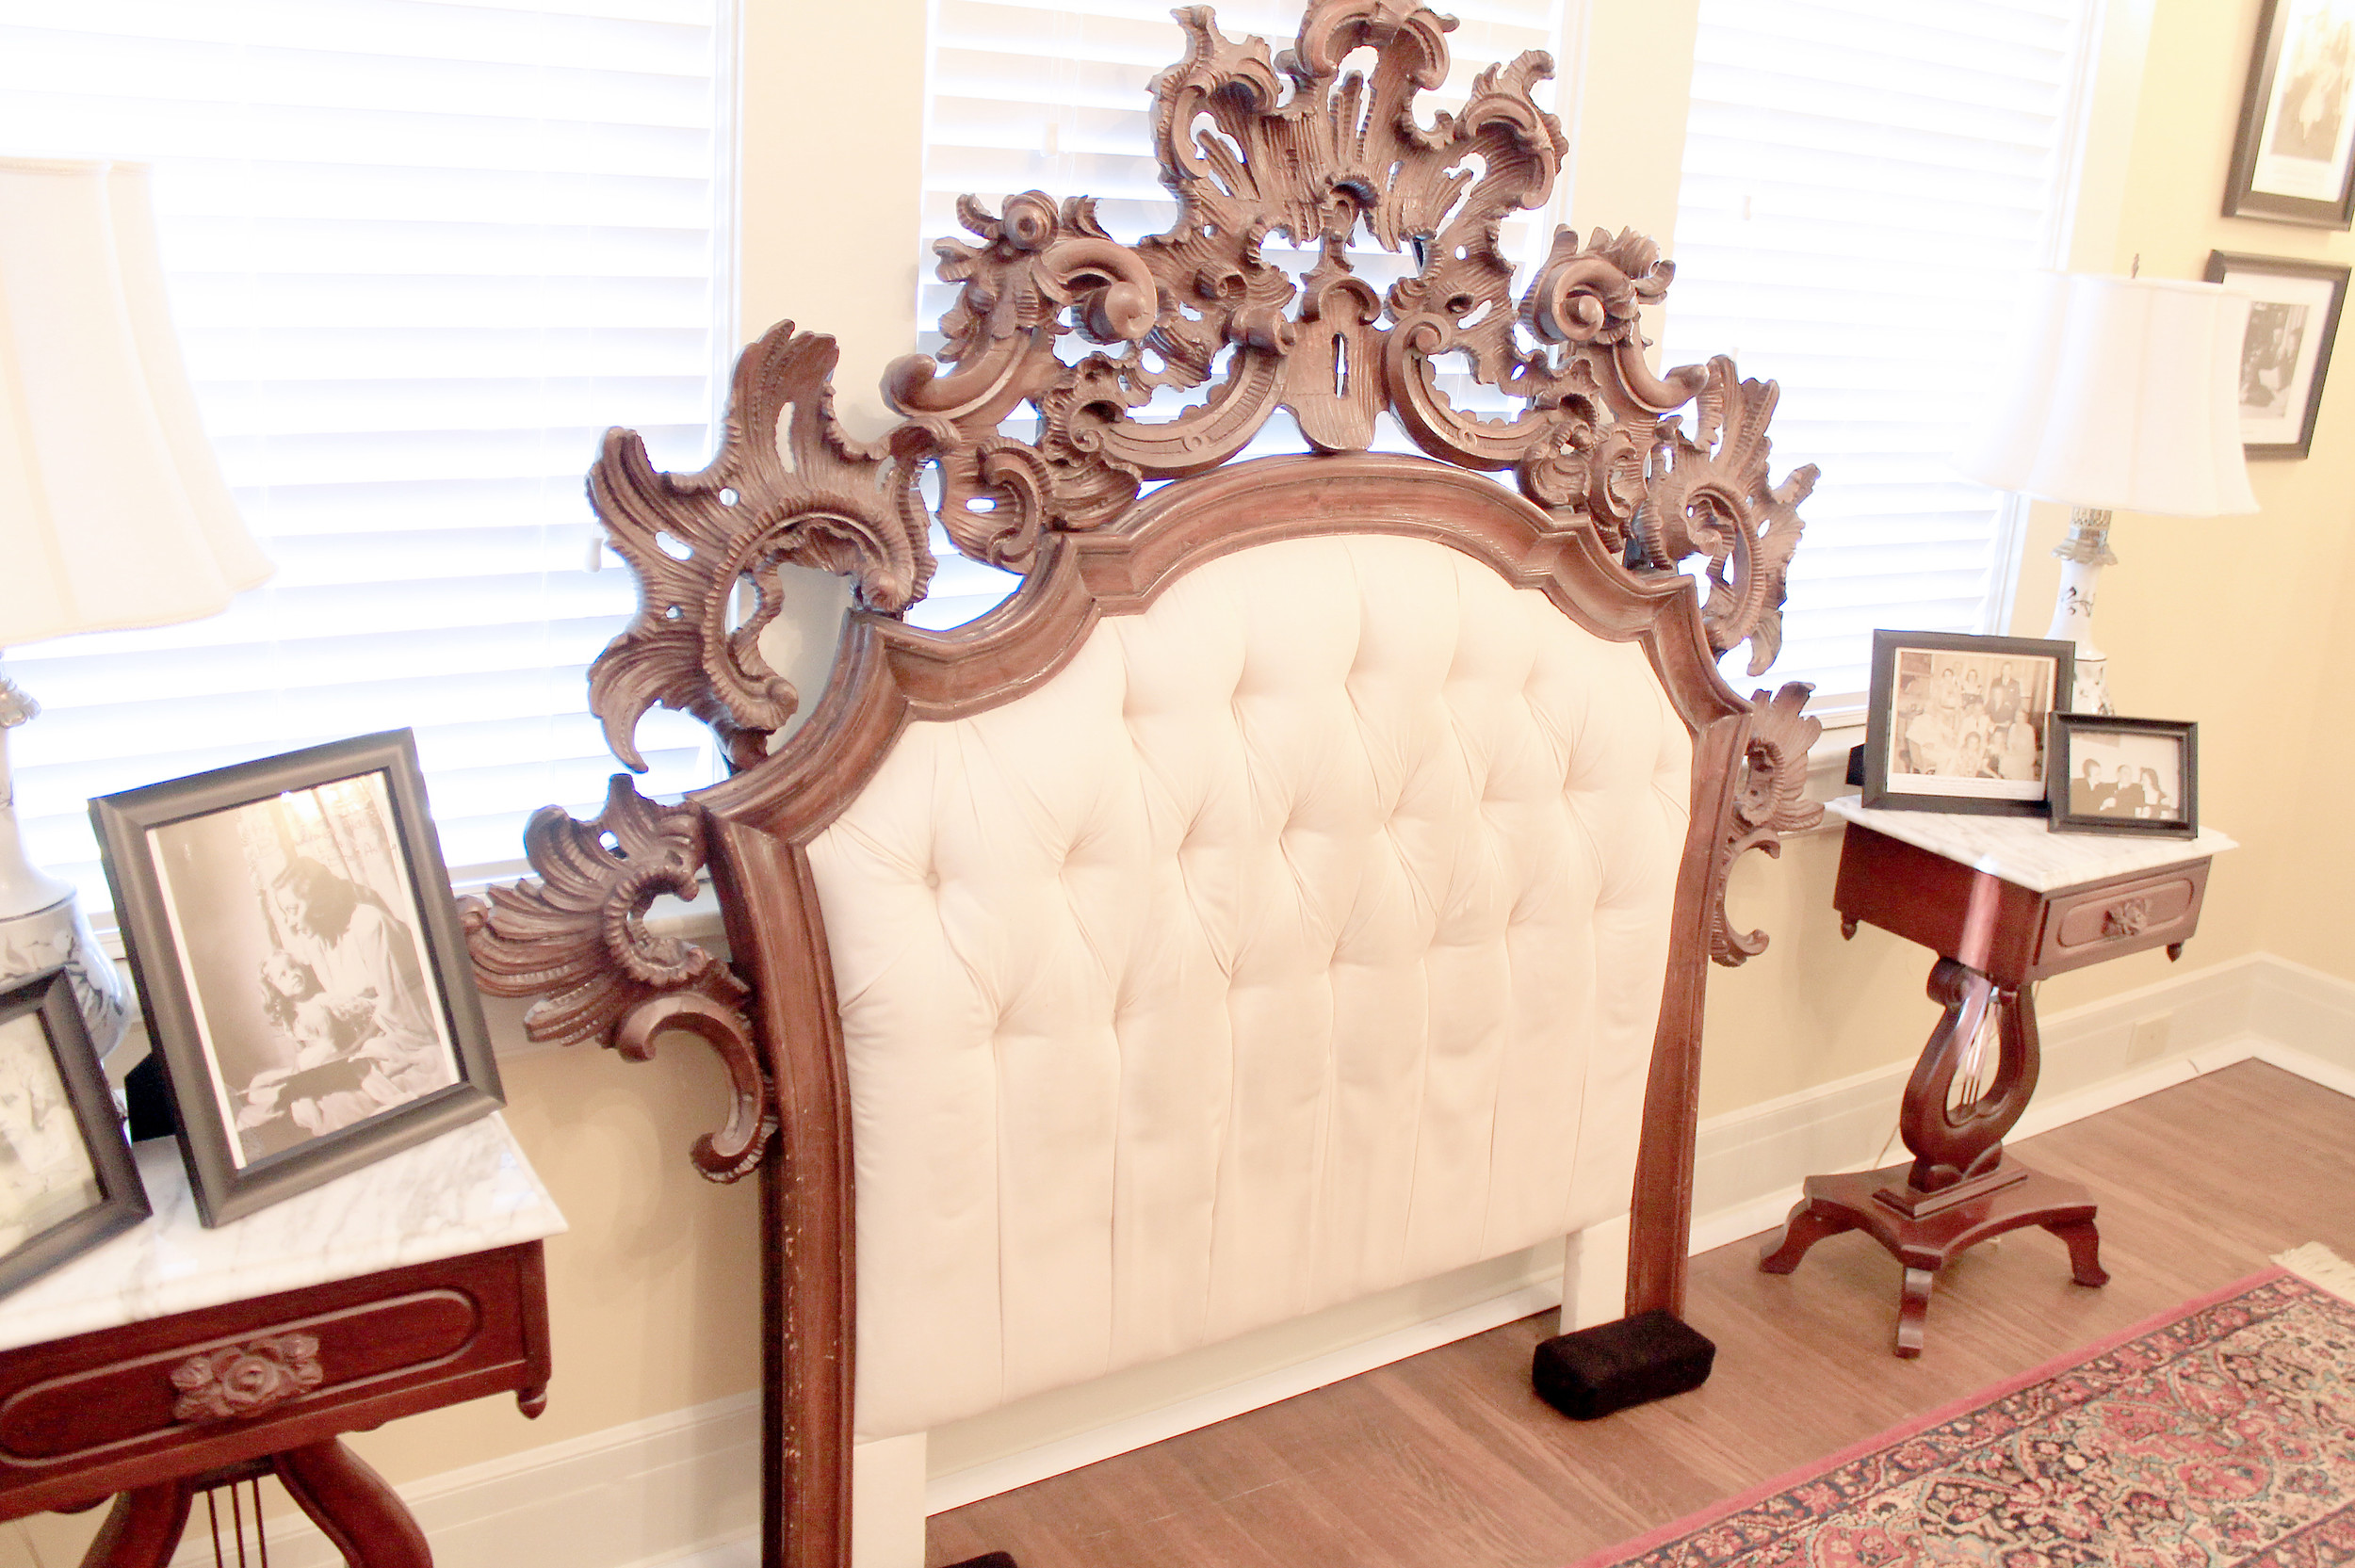 This headboard, which was housed in Tallulah Bankhead's New York City townhouse from 1957 until her death in 1968, has been on display at the Bankhead House and Heritage Center since October. Daily Mountain Eagle - Jennifer Cohron